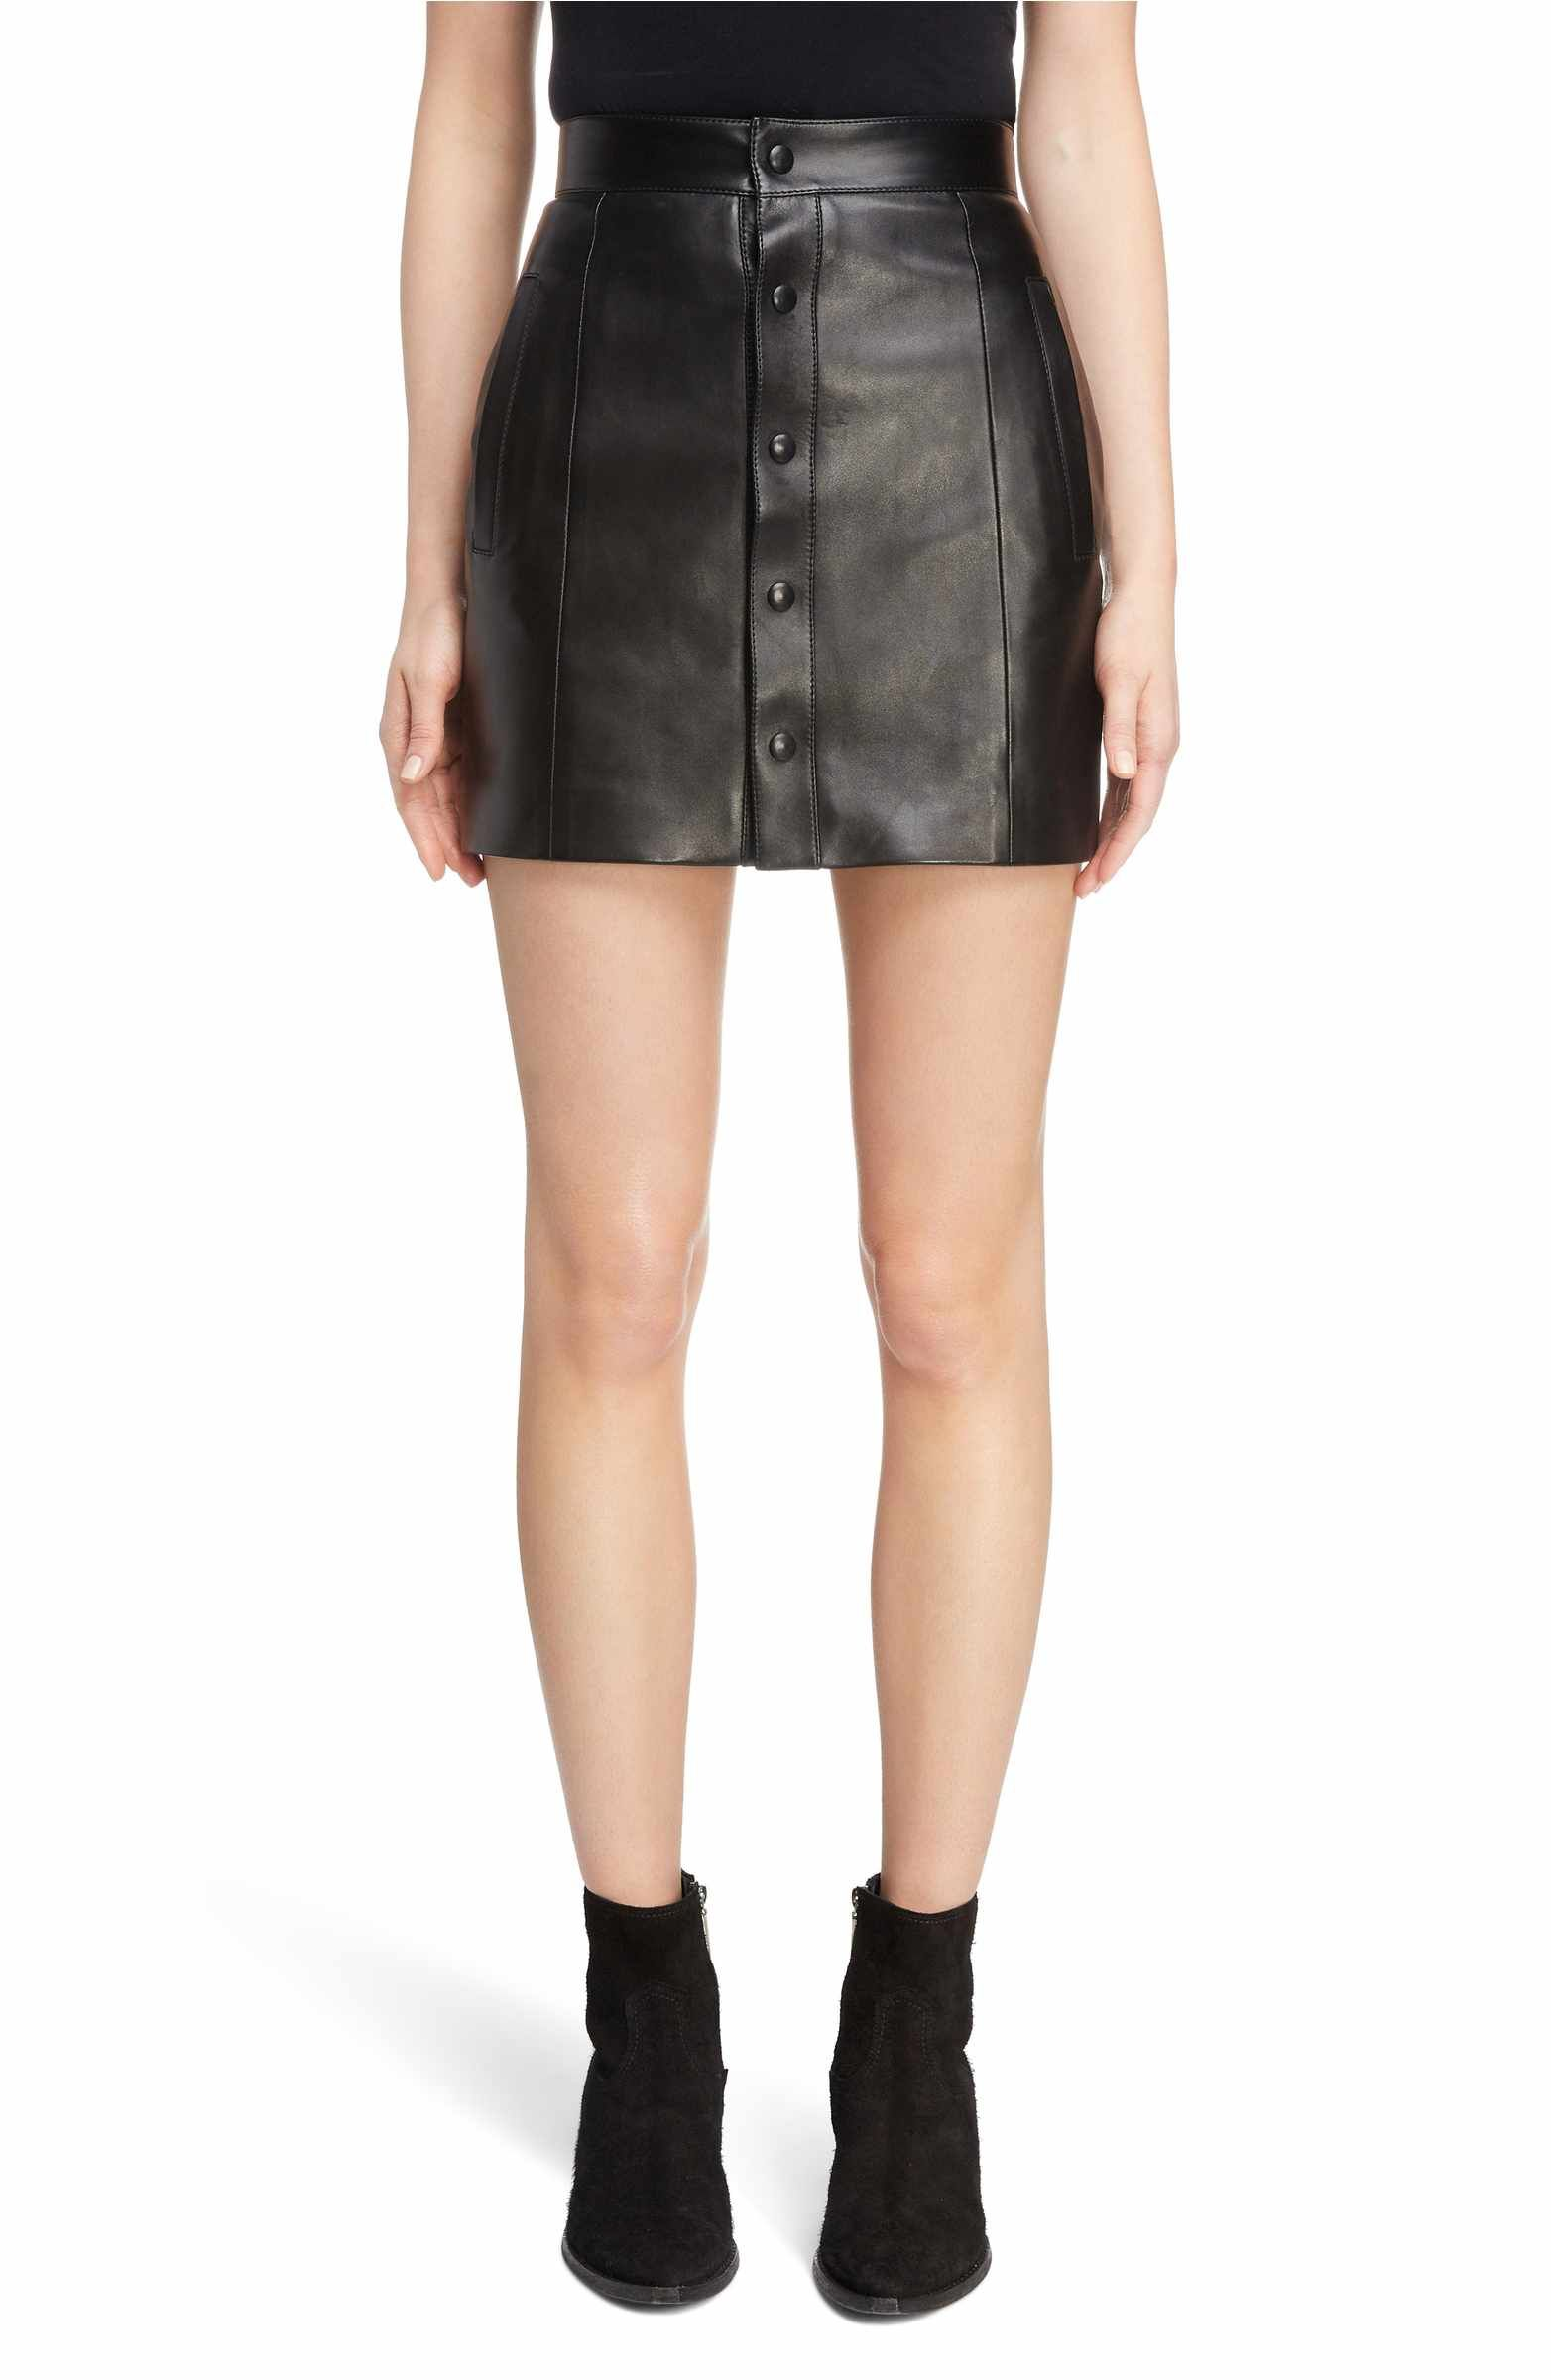 ae34f1776d Women S Fashion Cycling Shorts. Main Image - Saint Laurent Button Front Leather  Skirt